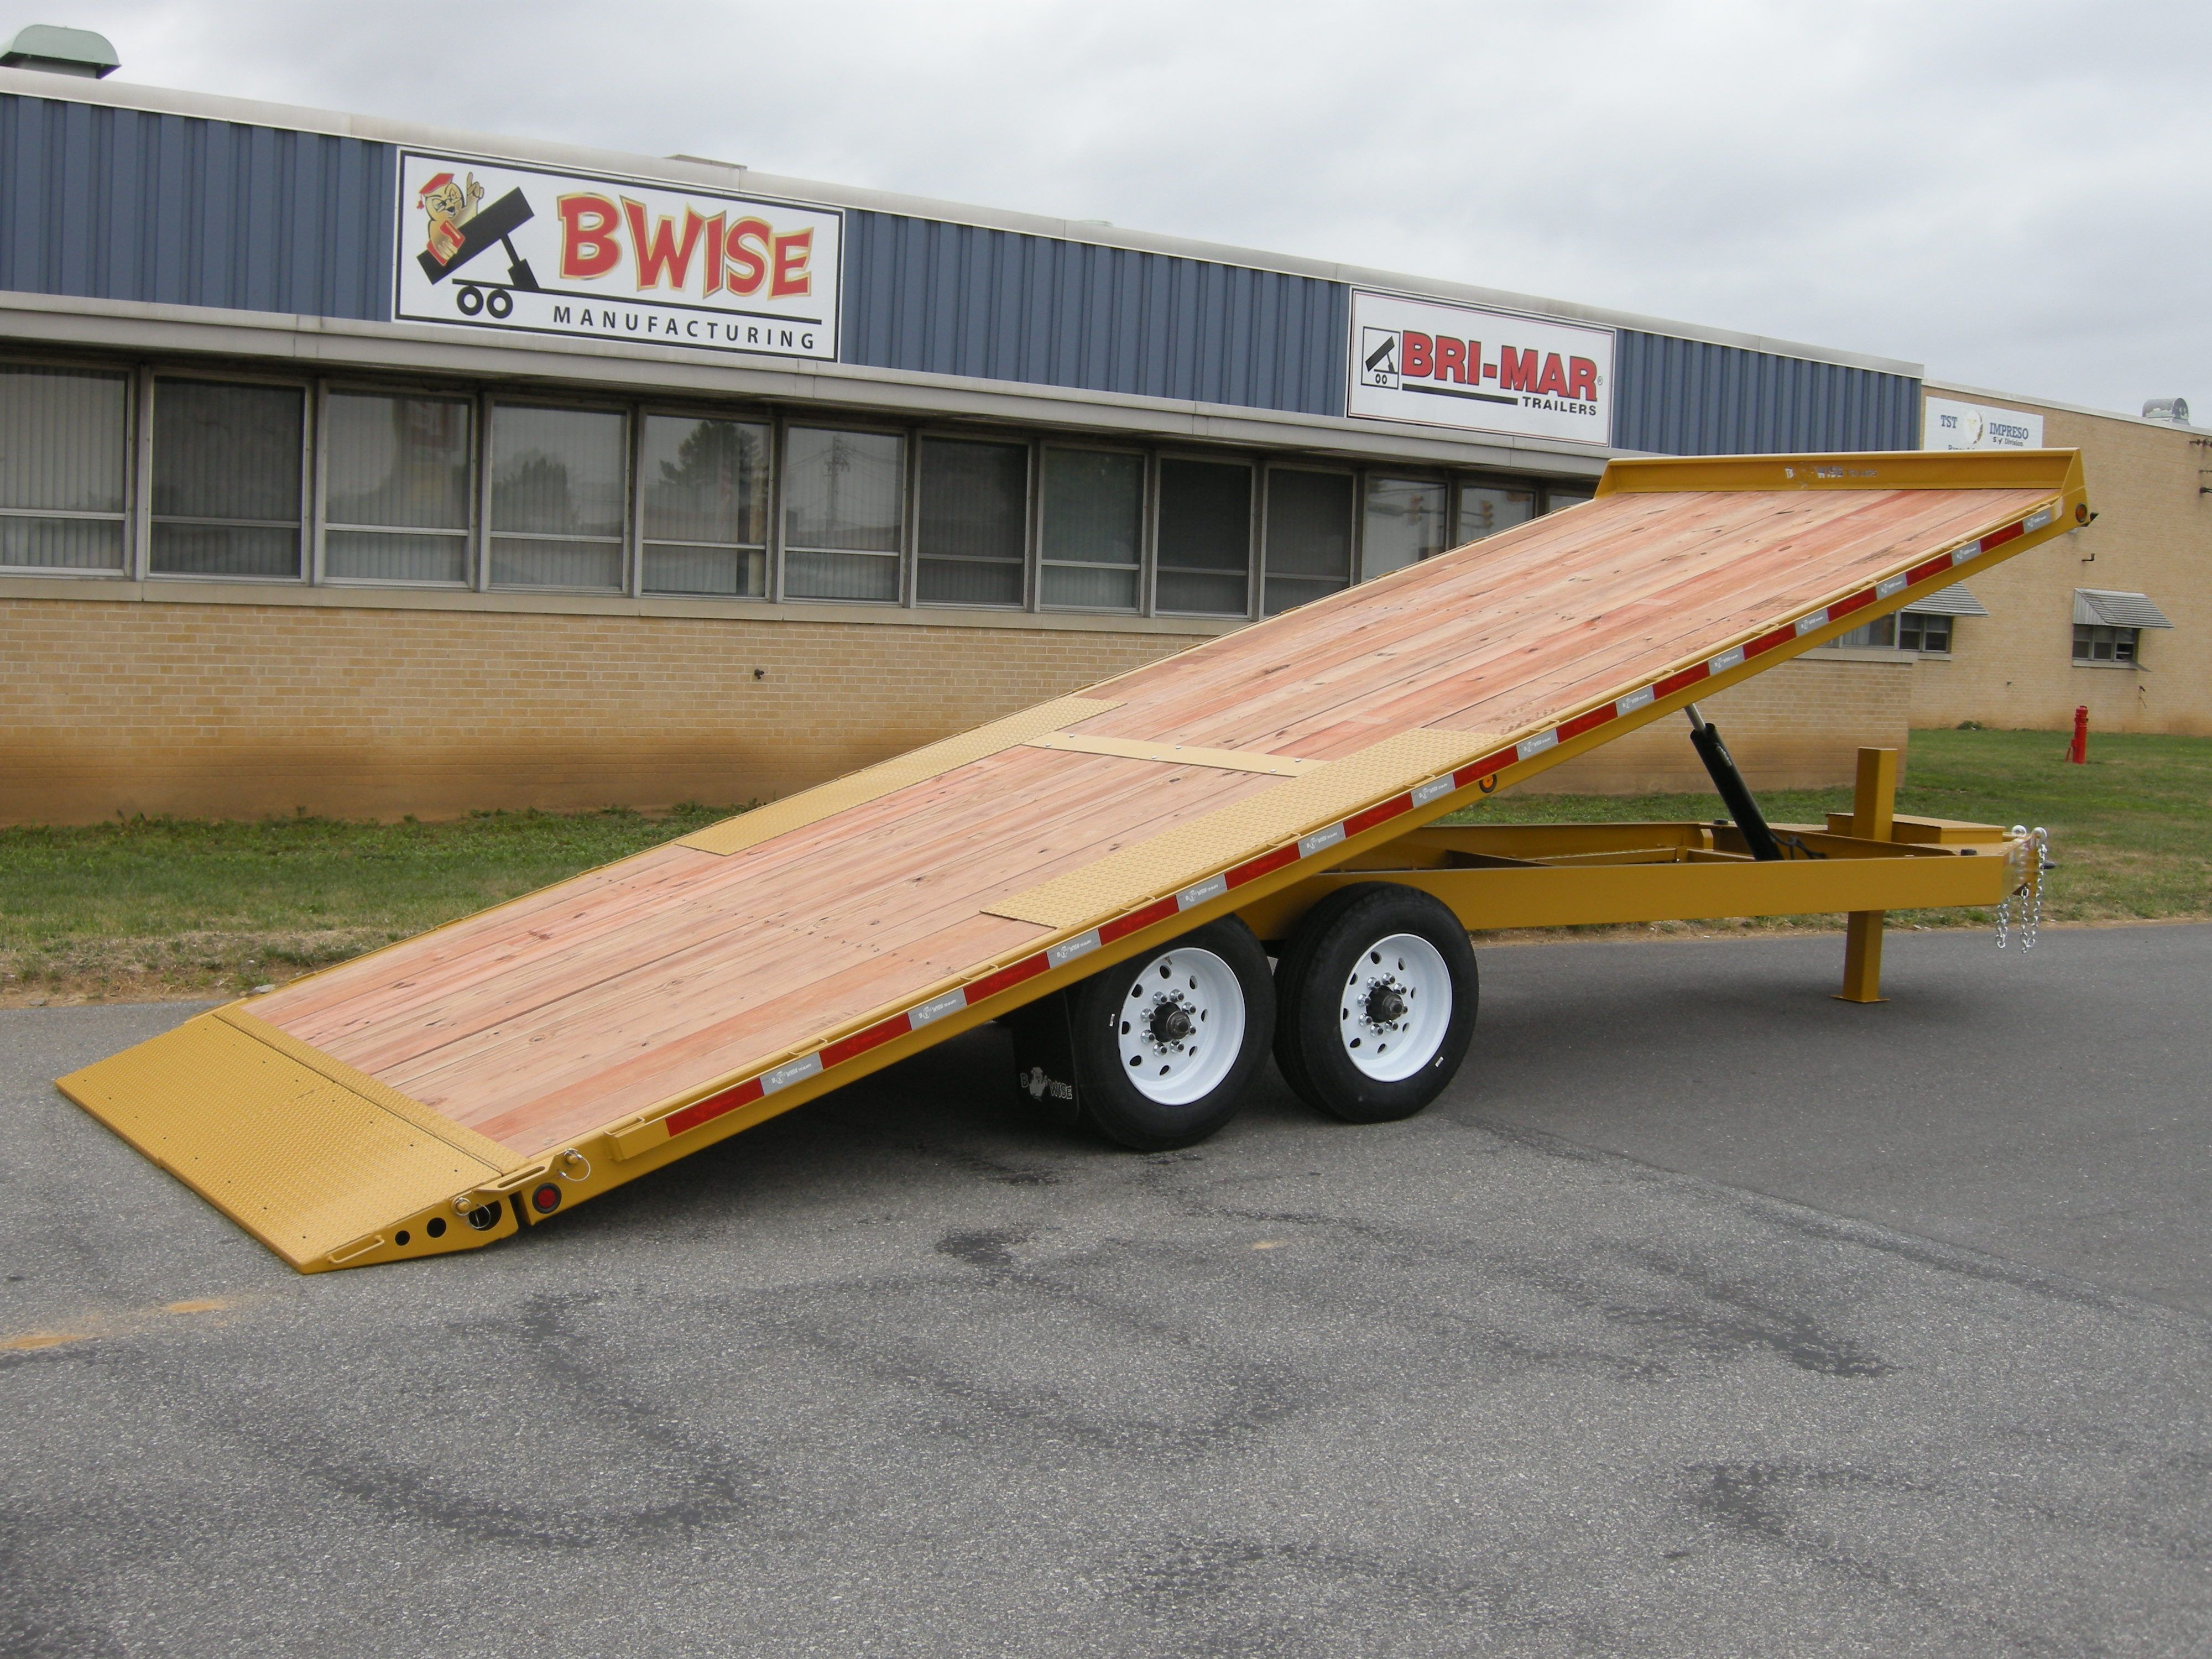 Bwise Manufacturing Offers Many Deck Over Tilt Sizes And Options To Fit Your Needs Our Build Quality And Standard Features Are Tilt Trailer Deck Over Trailer